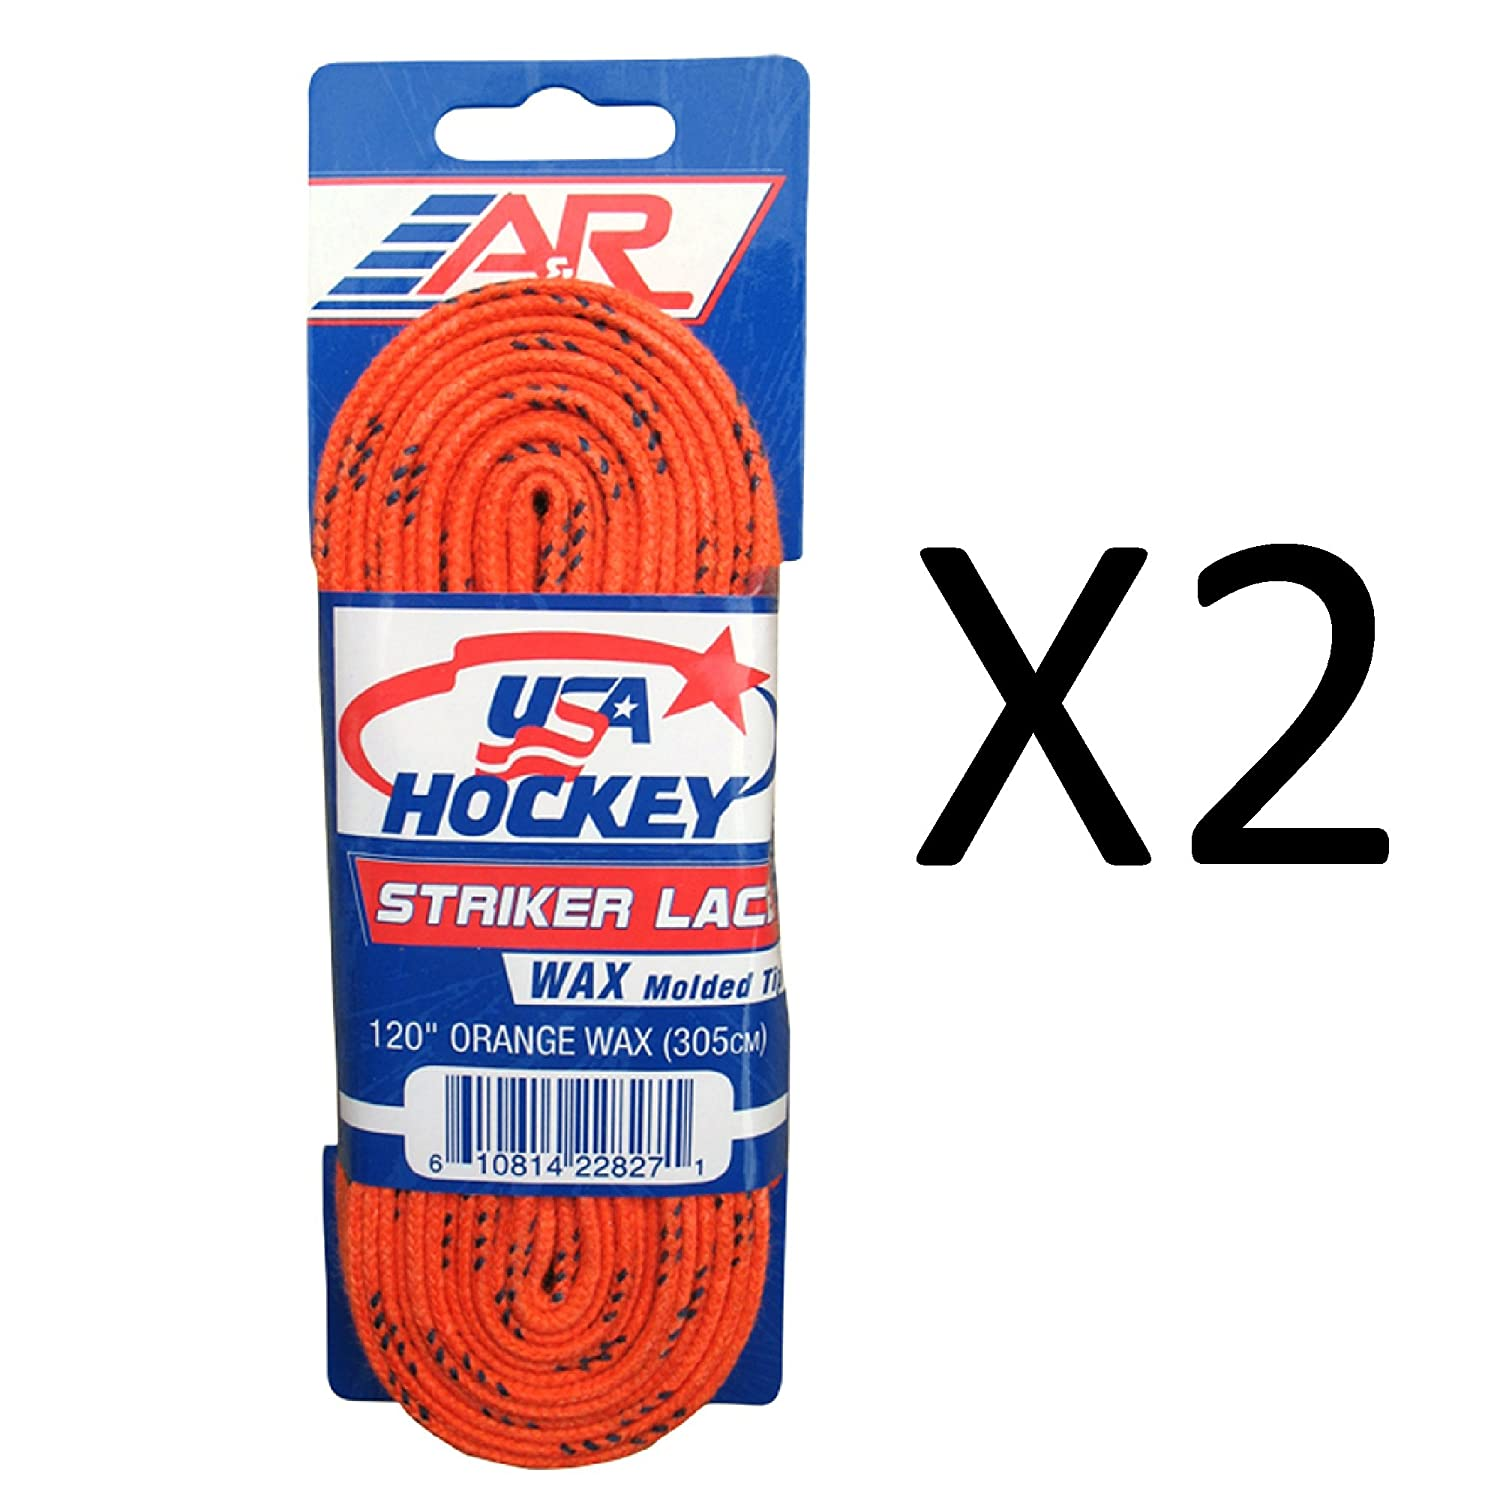 A&R Sports USA Hockey Laces - Waxed Striker Laces - Orange 120 Inches (2-Pack) A & R